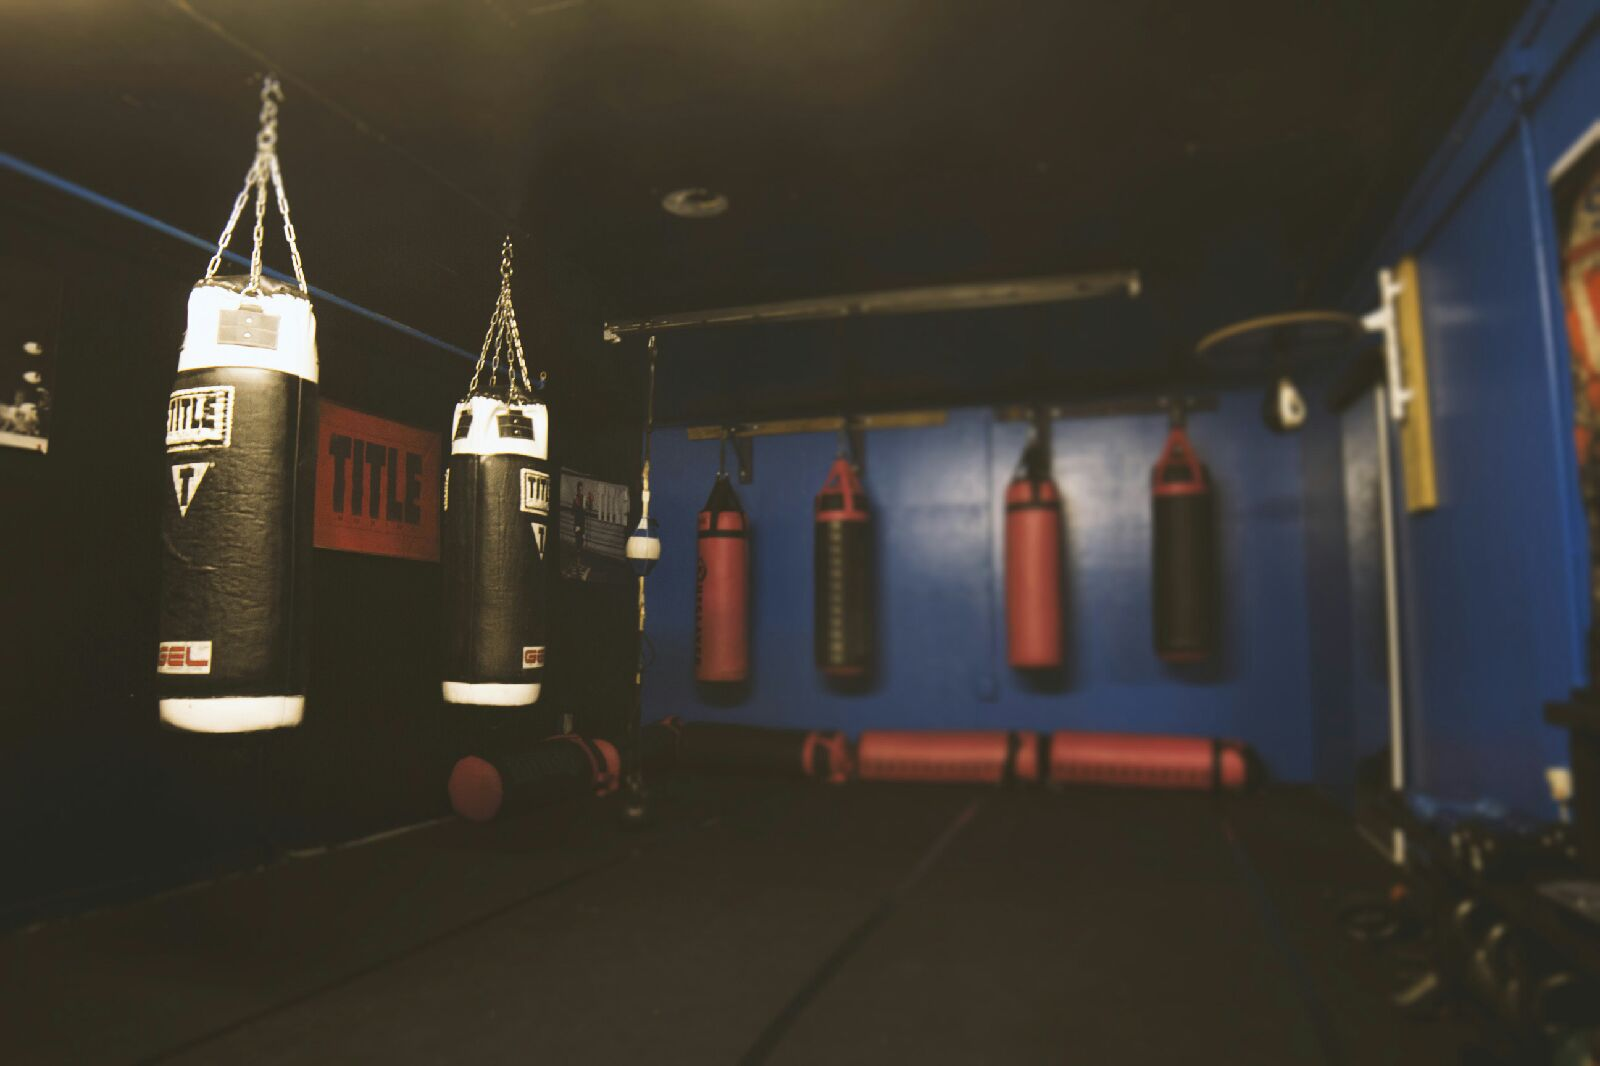 """""""THE FOXHOLE"""" - IF CLASS TIMES DON't fit your schedule, the foxhole has heavy bags, a speed bag, weights and kettlebells available for you to use on your own.OPEN weekdays FROM 10am - 8pm and anytime classes are going on."""